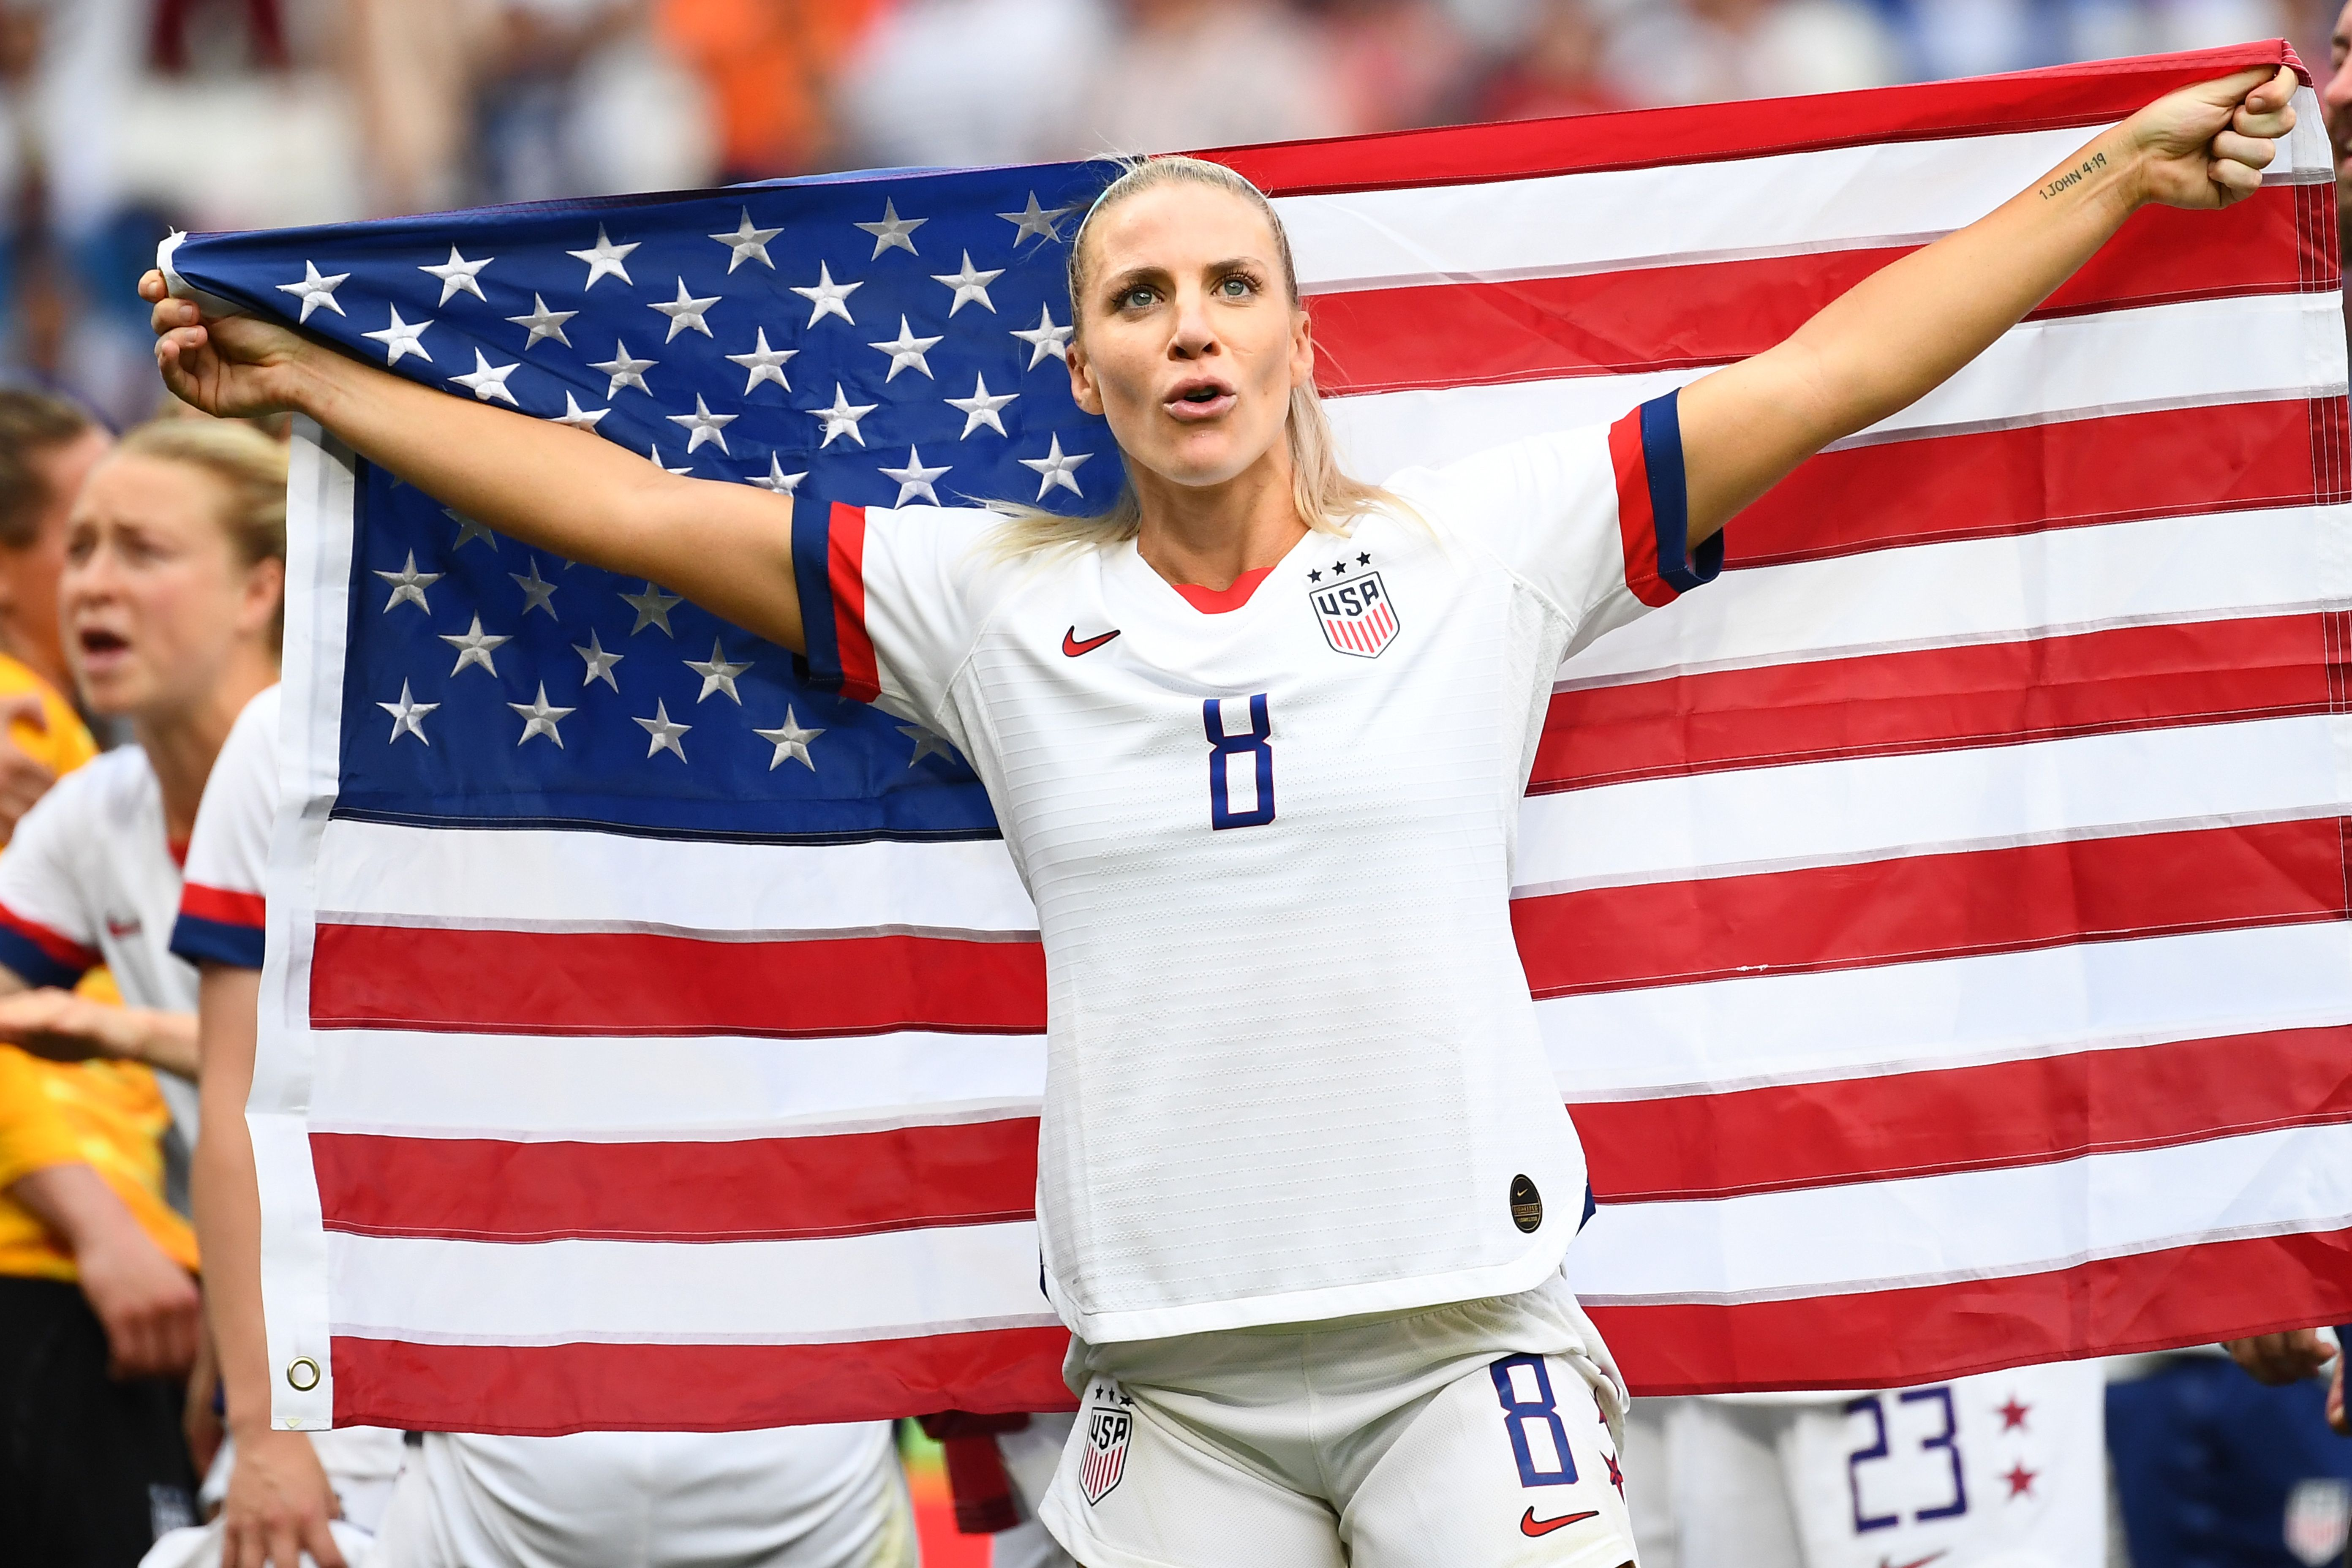 3b00c81ae U.S. Women's Soccer Team Demands 'Equal Pay' With Men's Team